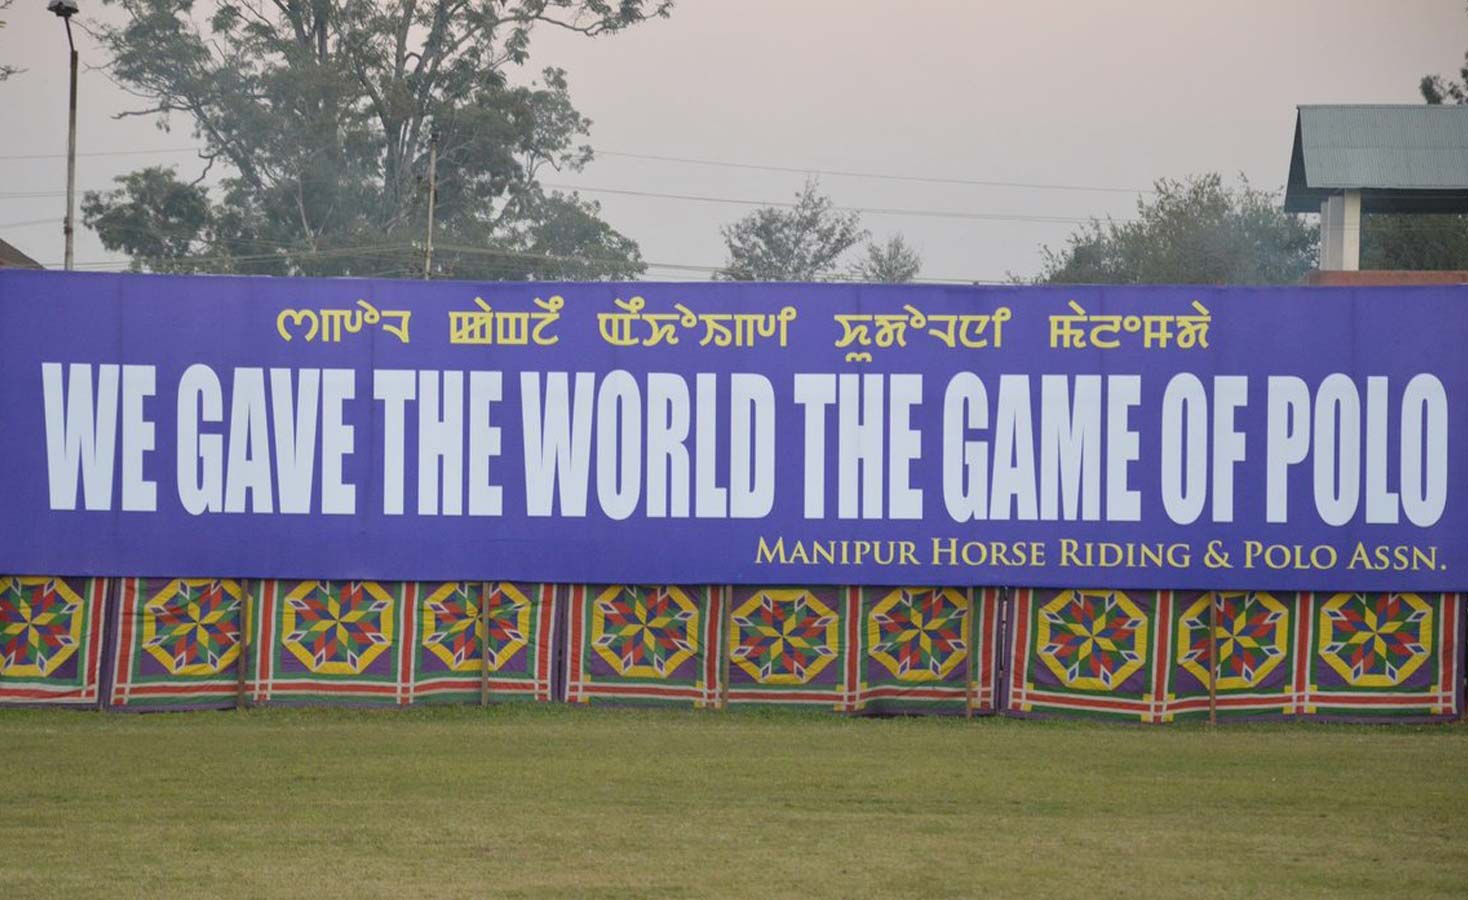 history of polo in Manipur